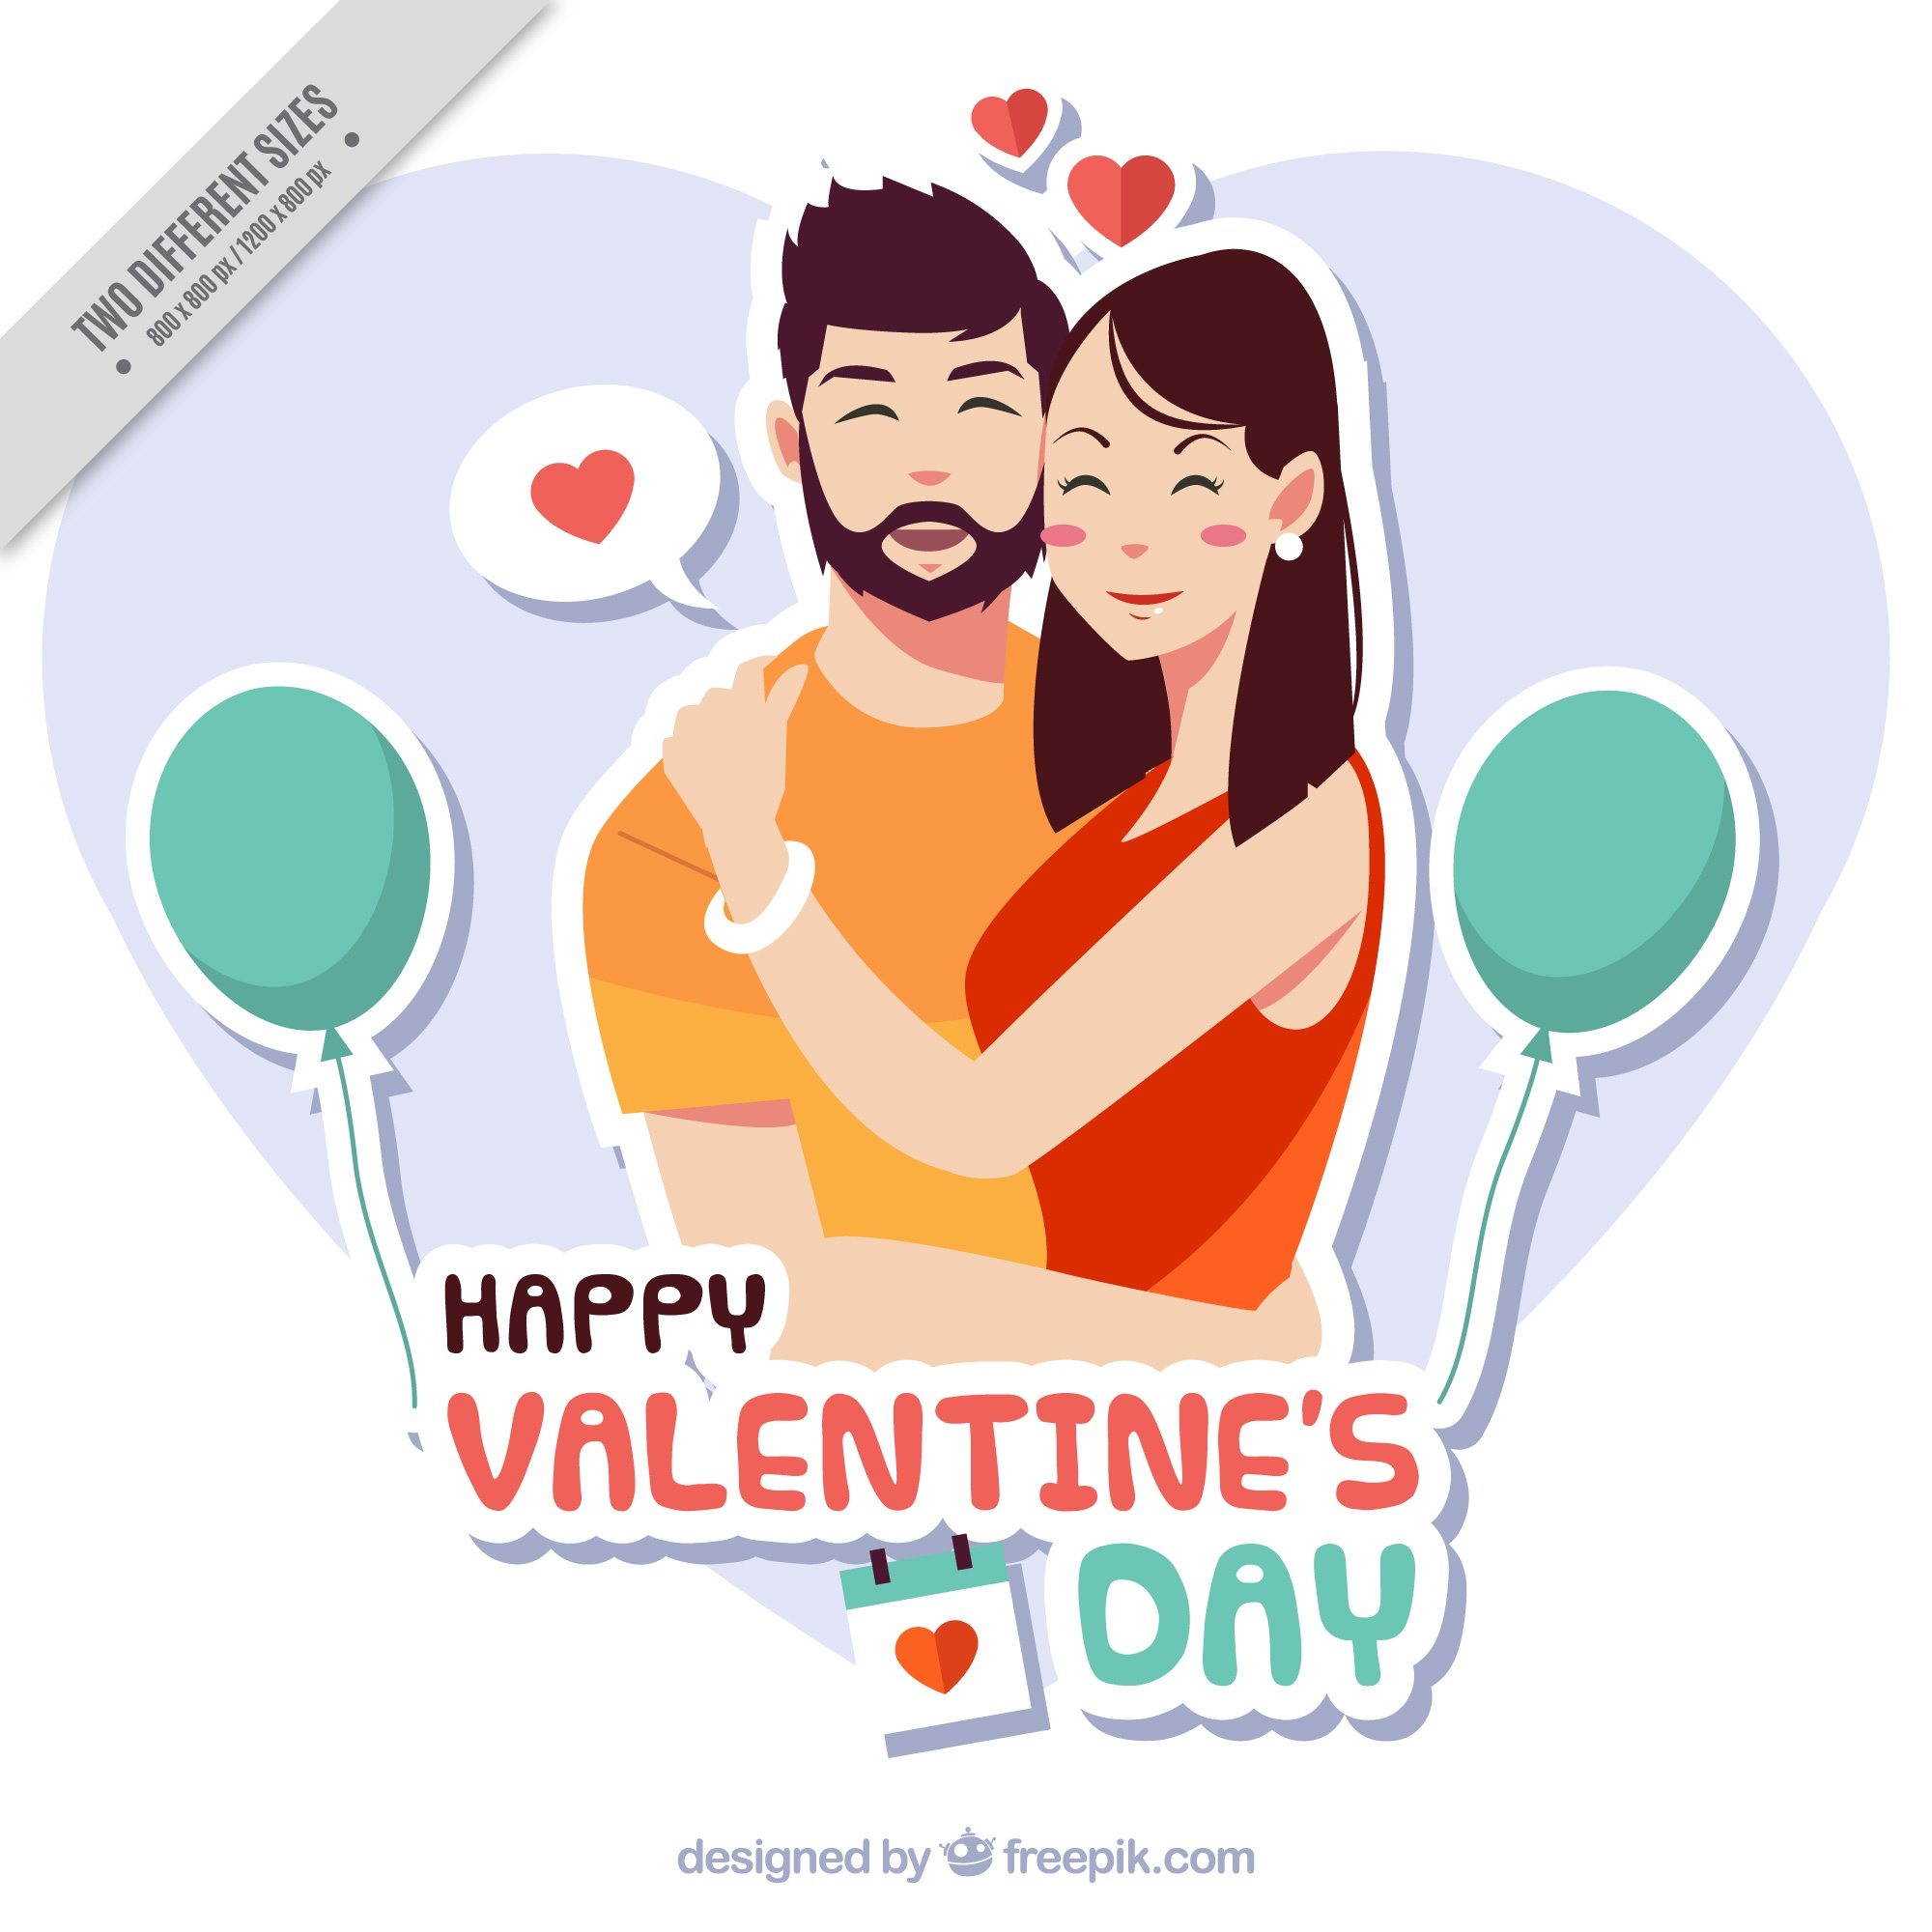 Beautiful background with couple in love for valentine's day